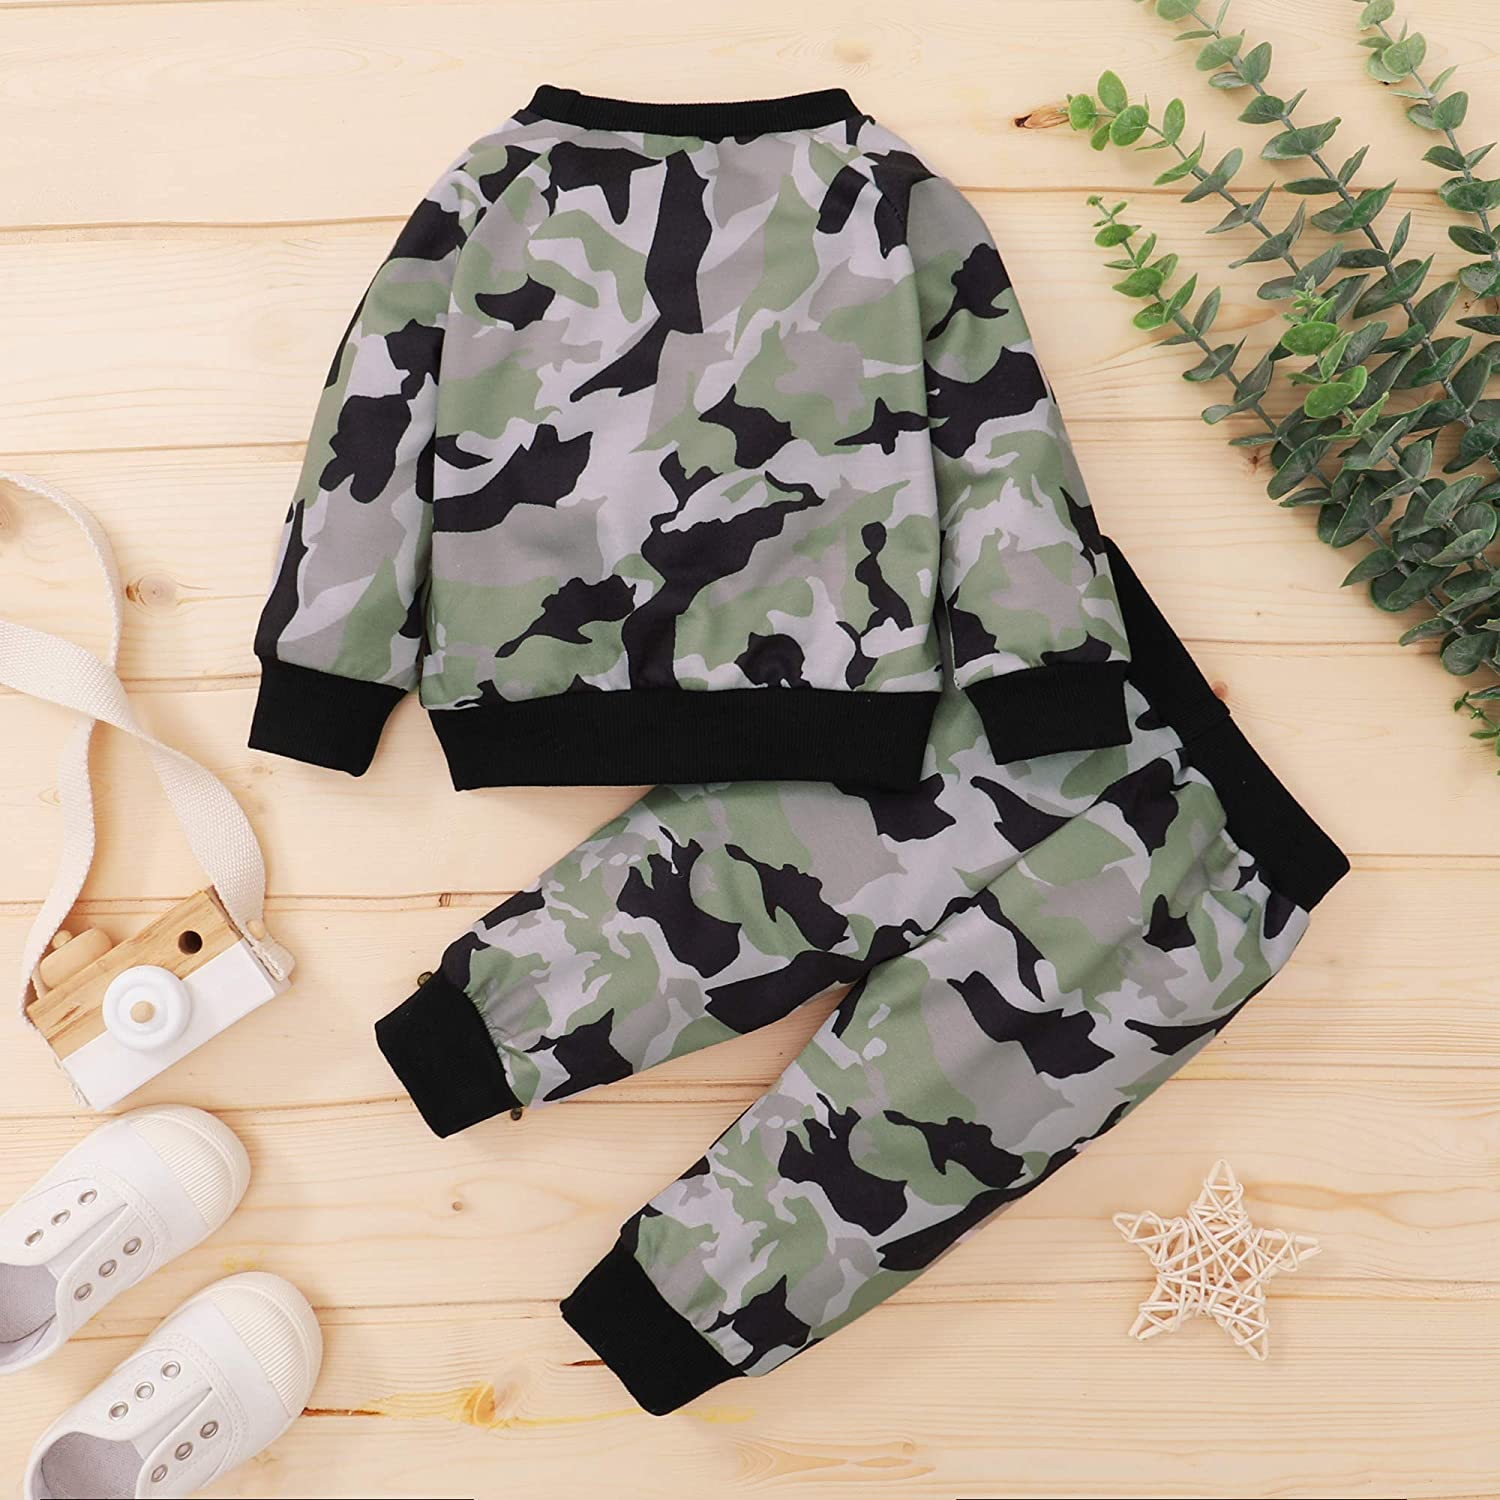 Mioglrie Newborn Baby Boy Clothes Romper Pants Set Cute Baby Clothes Boy Summer Newborn Outfits for Boys